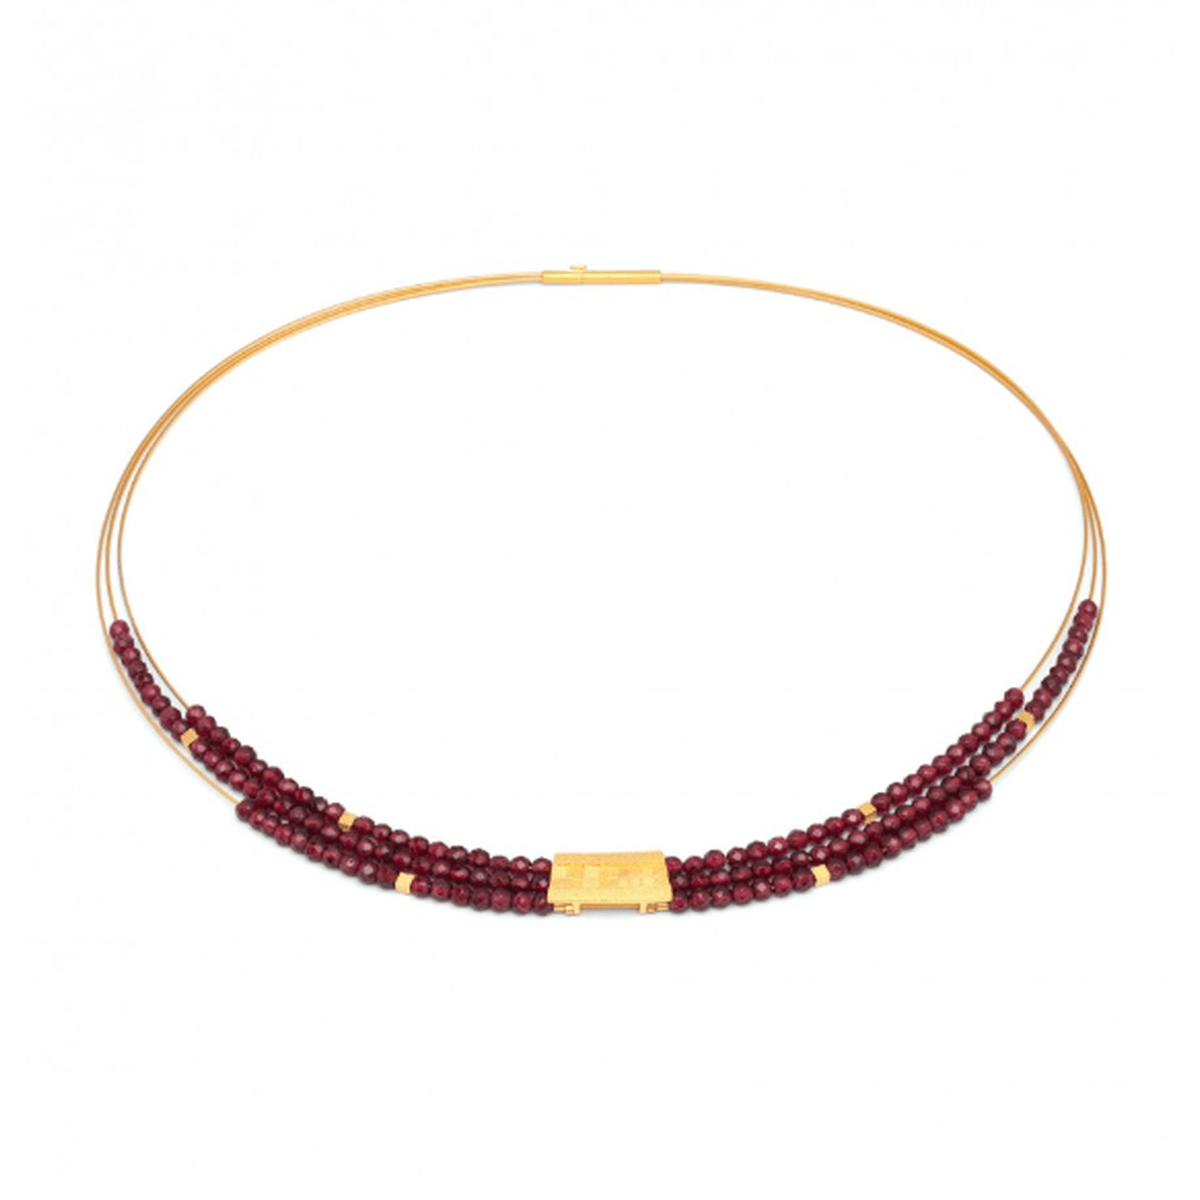 Orfini Garnet Necklace - 85089776